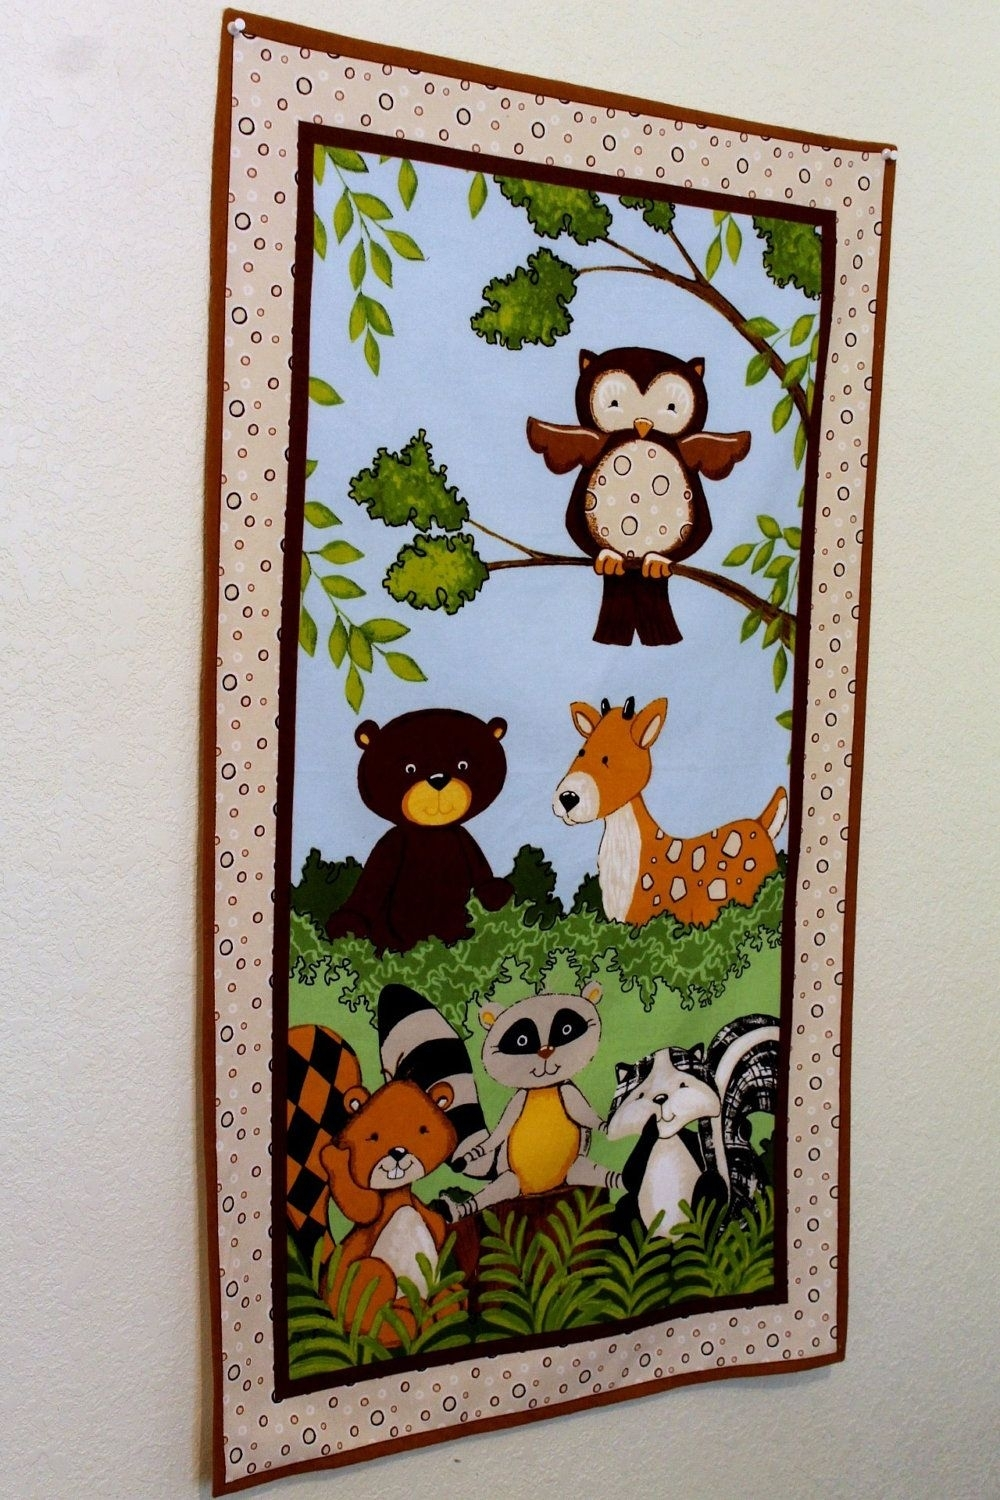 Wall Decor Woodland Animal Forest Creatures Flannel Fabric Panel Regarding Current Baby Nursery Fabric Wall Art (View 4 of 15)